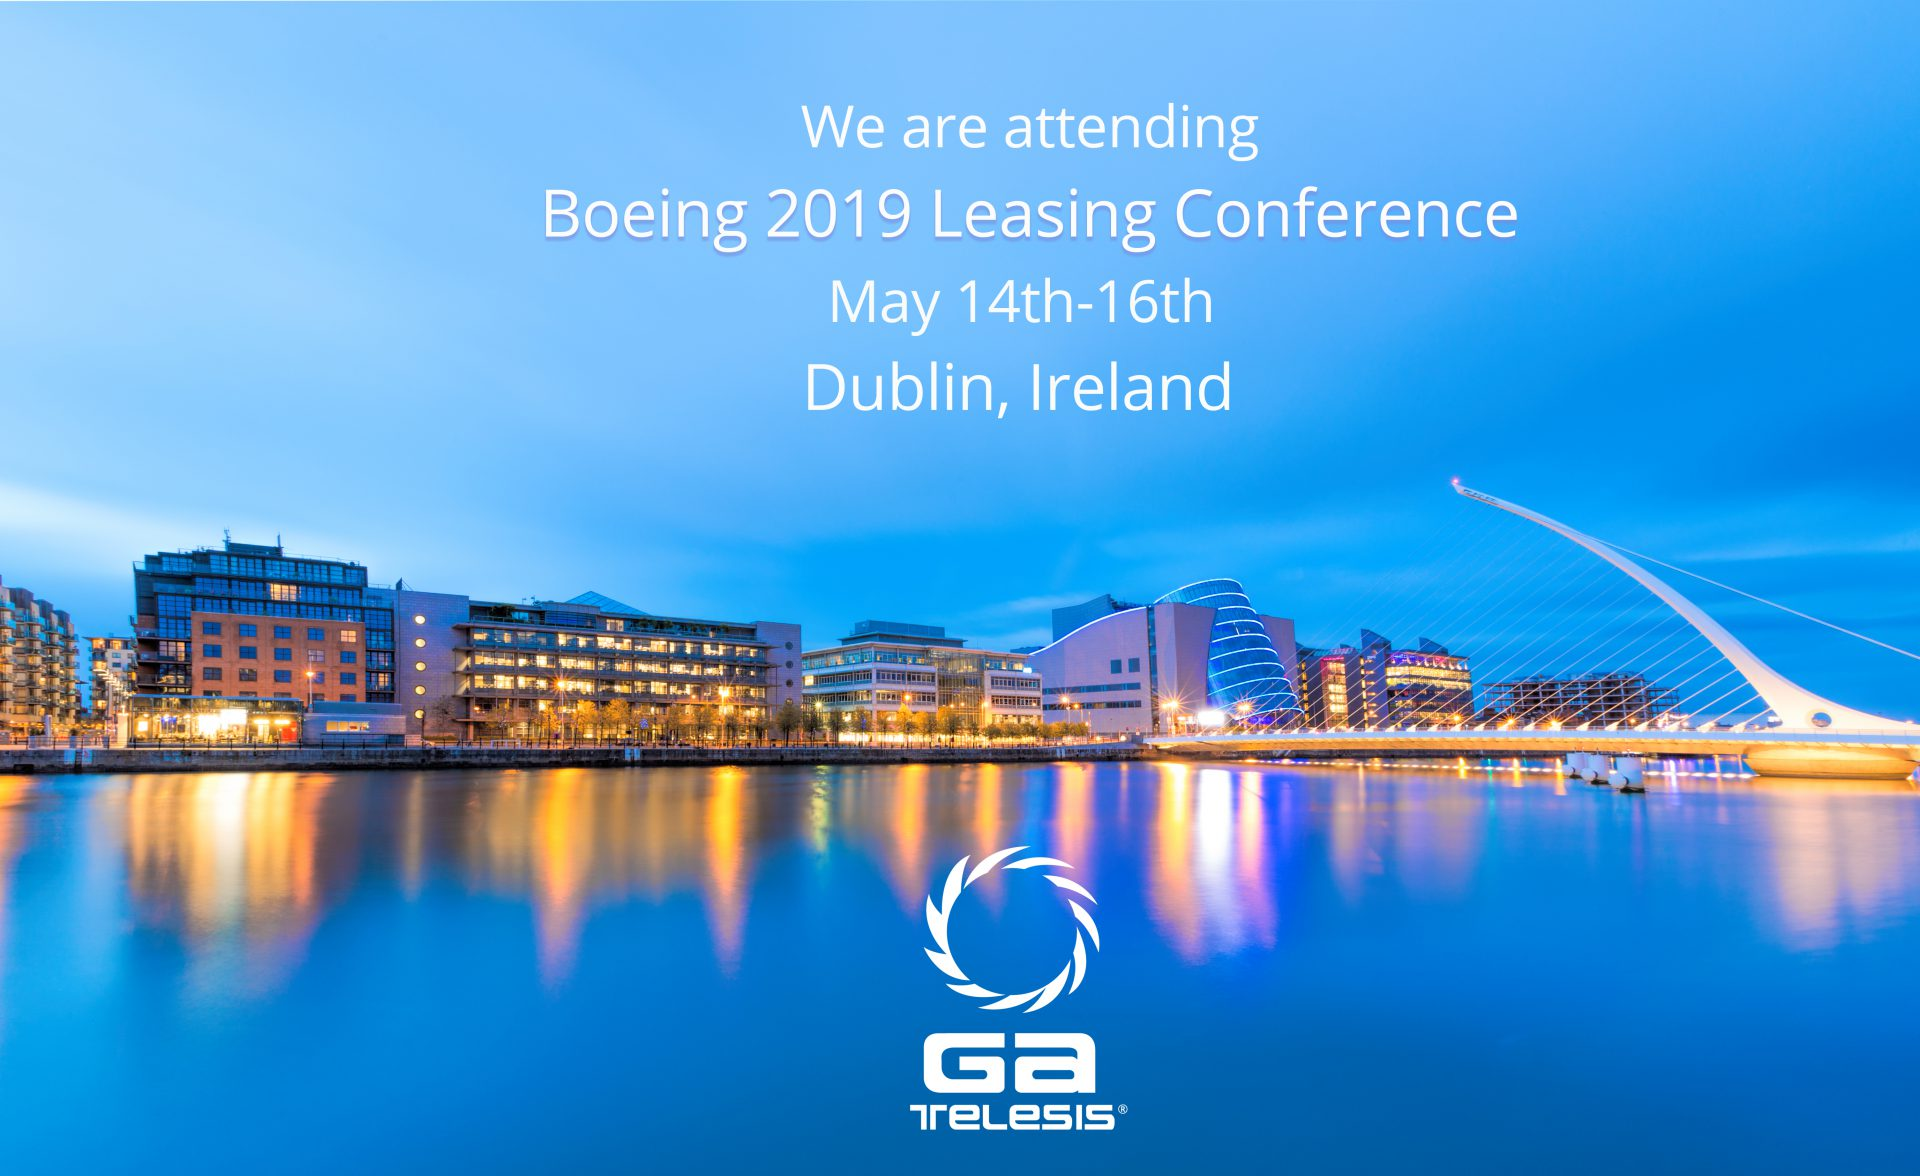 Boeing 2019 Leasing Conference